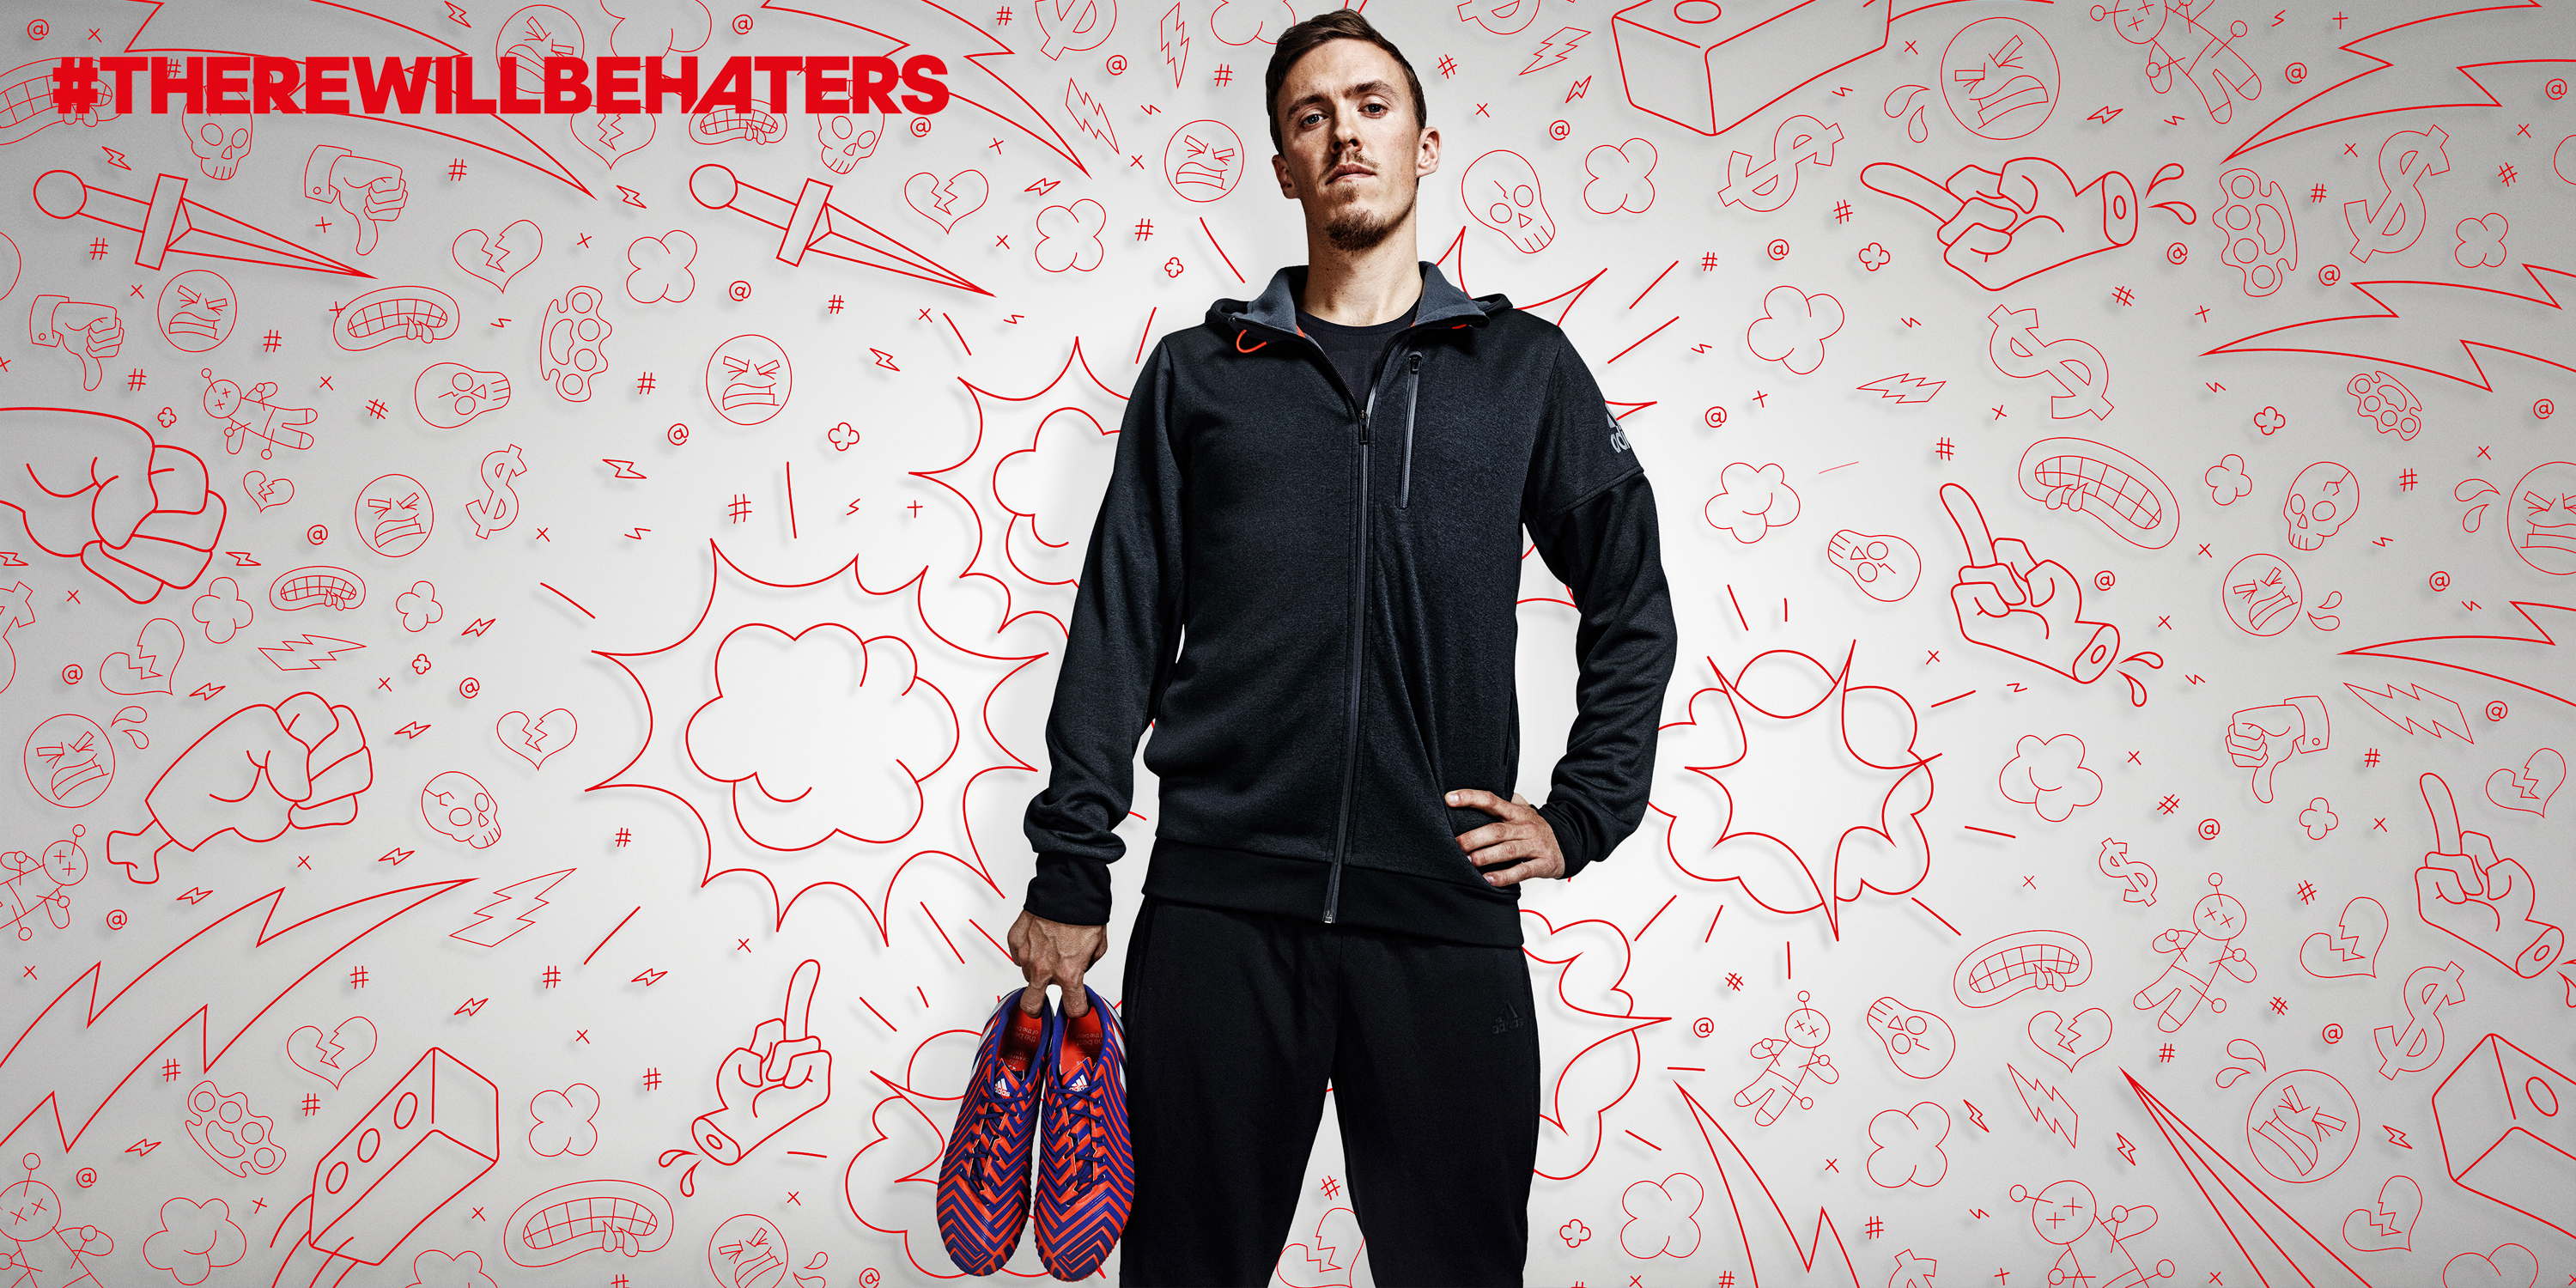 #There will be Haters Campaign, football, Thomas Müller, Detlef Schneider Photography